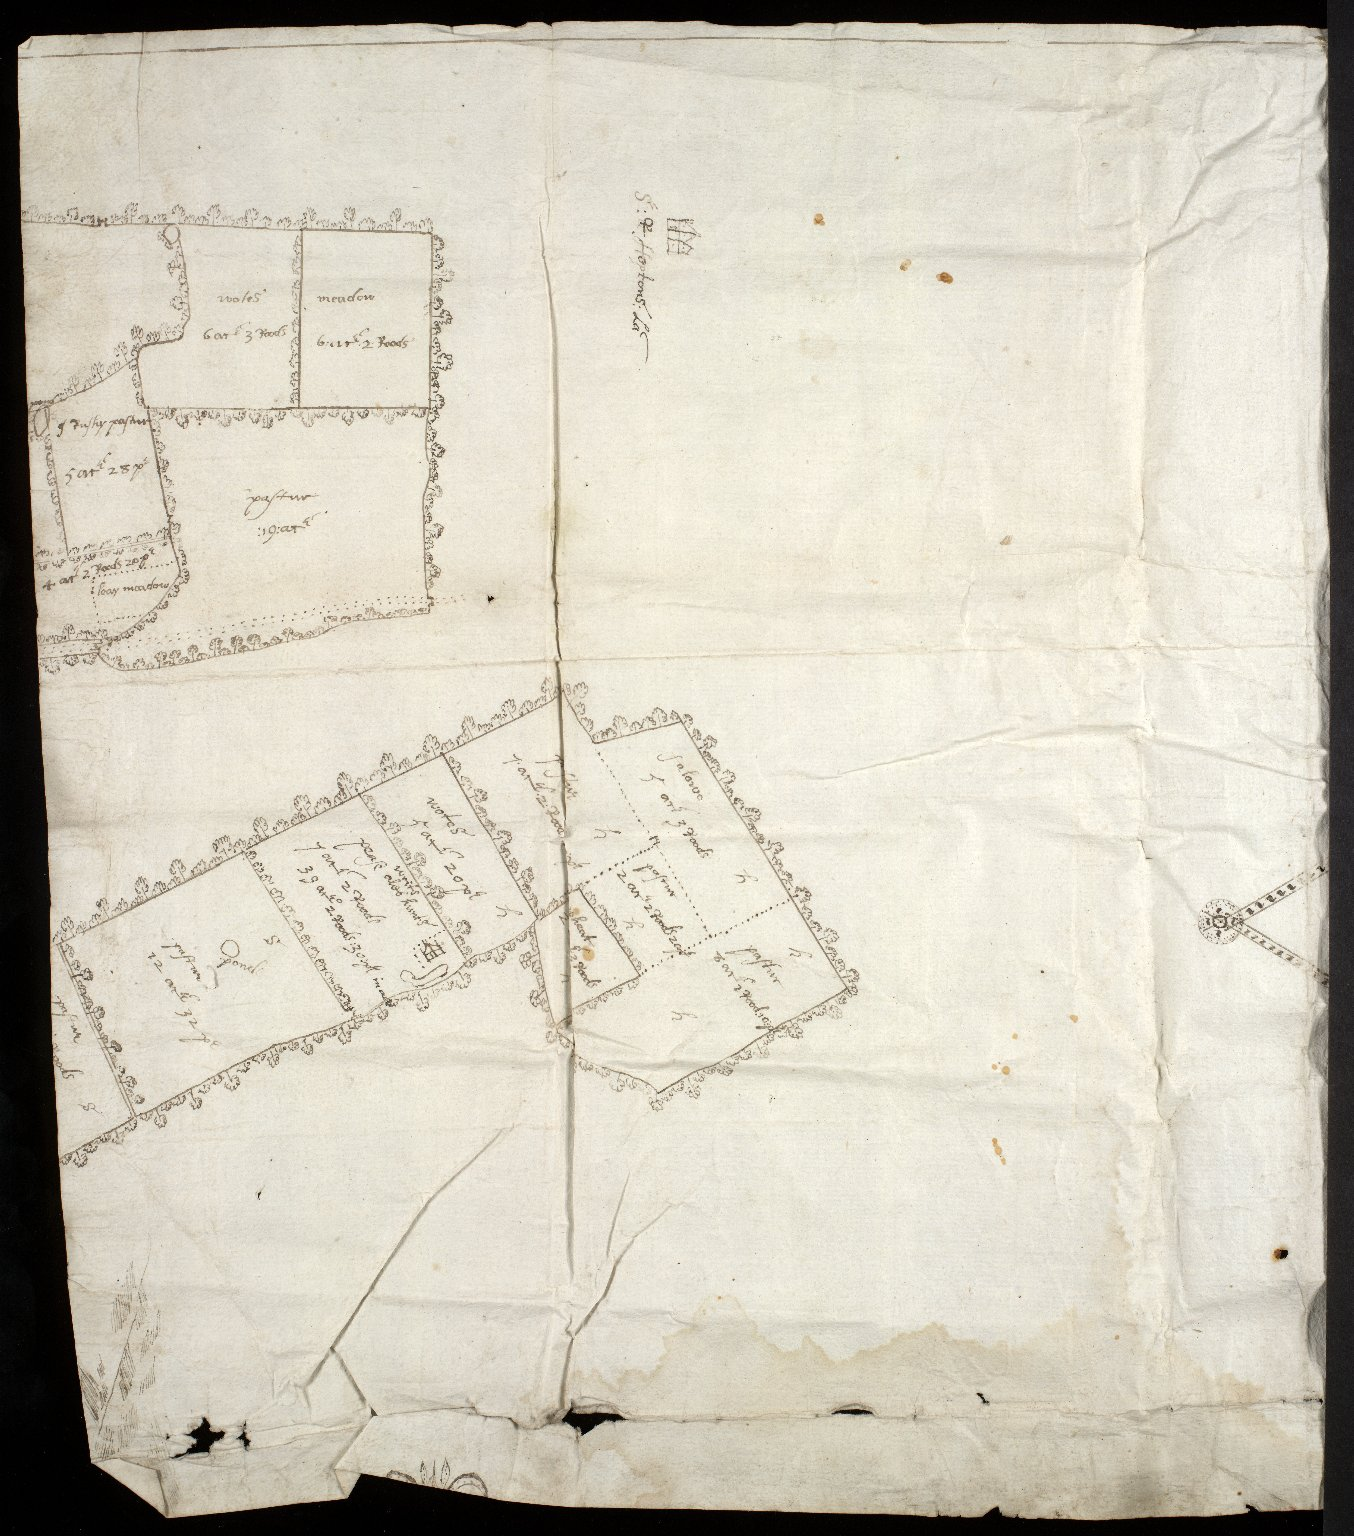 [Plan of the estate of Sir Alex. Cumming of Culter, c. 1702-25] [1 of 2]